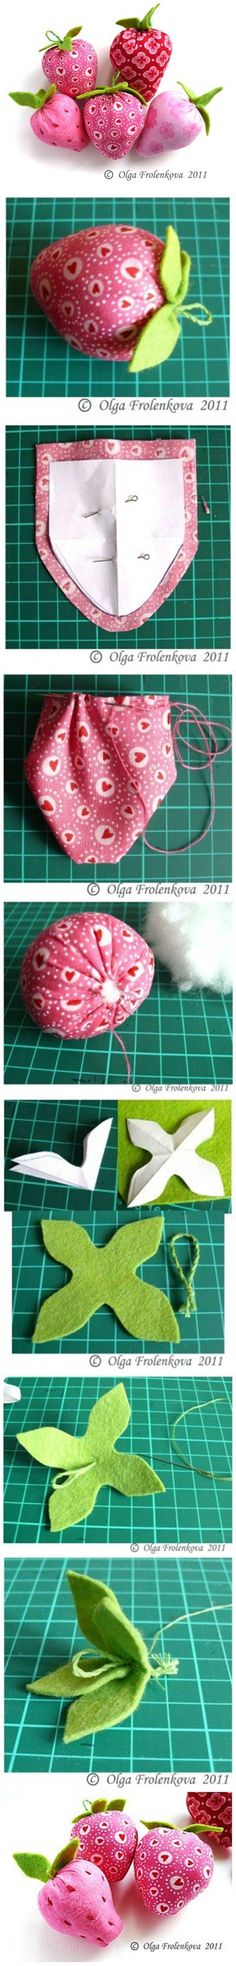 "<input type=""hidden"" value="""" data-frizzlyPostContainer="""" data-frizzlyPostUrl=""http://www.usefuldiy.com/diy-sew-fabric-strawberry/"" data-frizzlyPostTitle=""DIY Sew Fabric Strawberry"" data-frizzlyHoverContainer=""""><p>>>> Craft Tutorials More Free Instructions Free Tutorials More Craft Tutorials</p>"